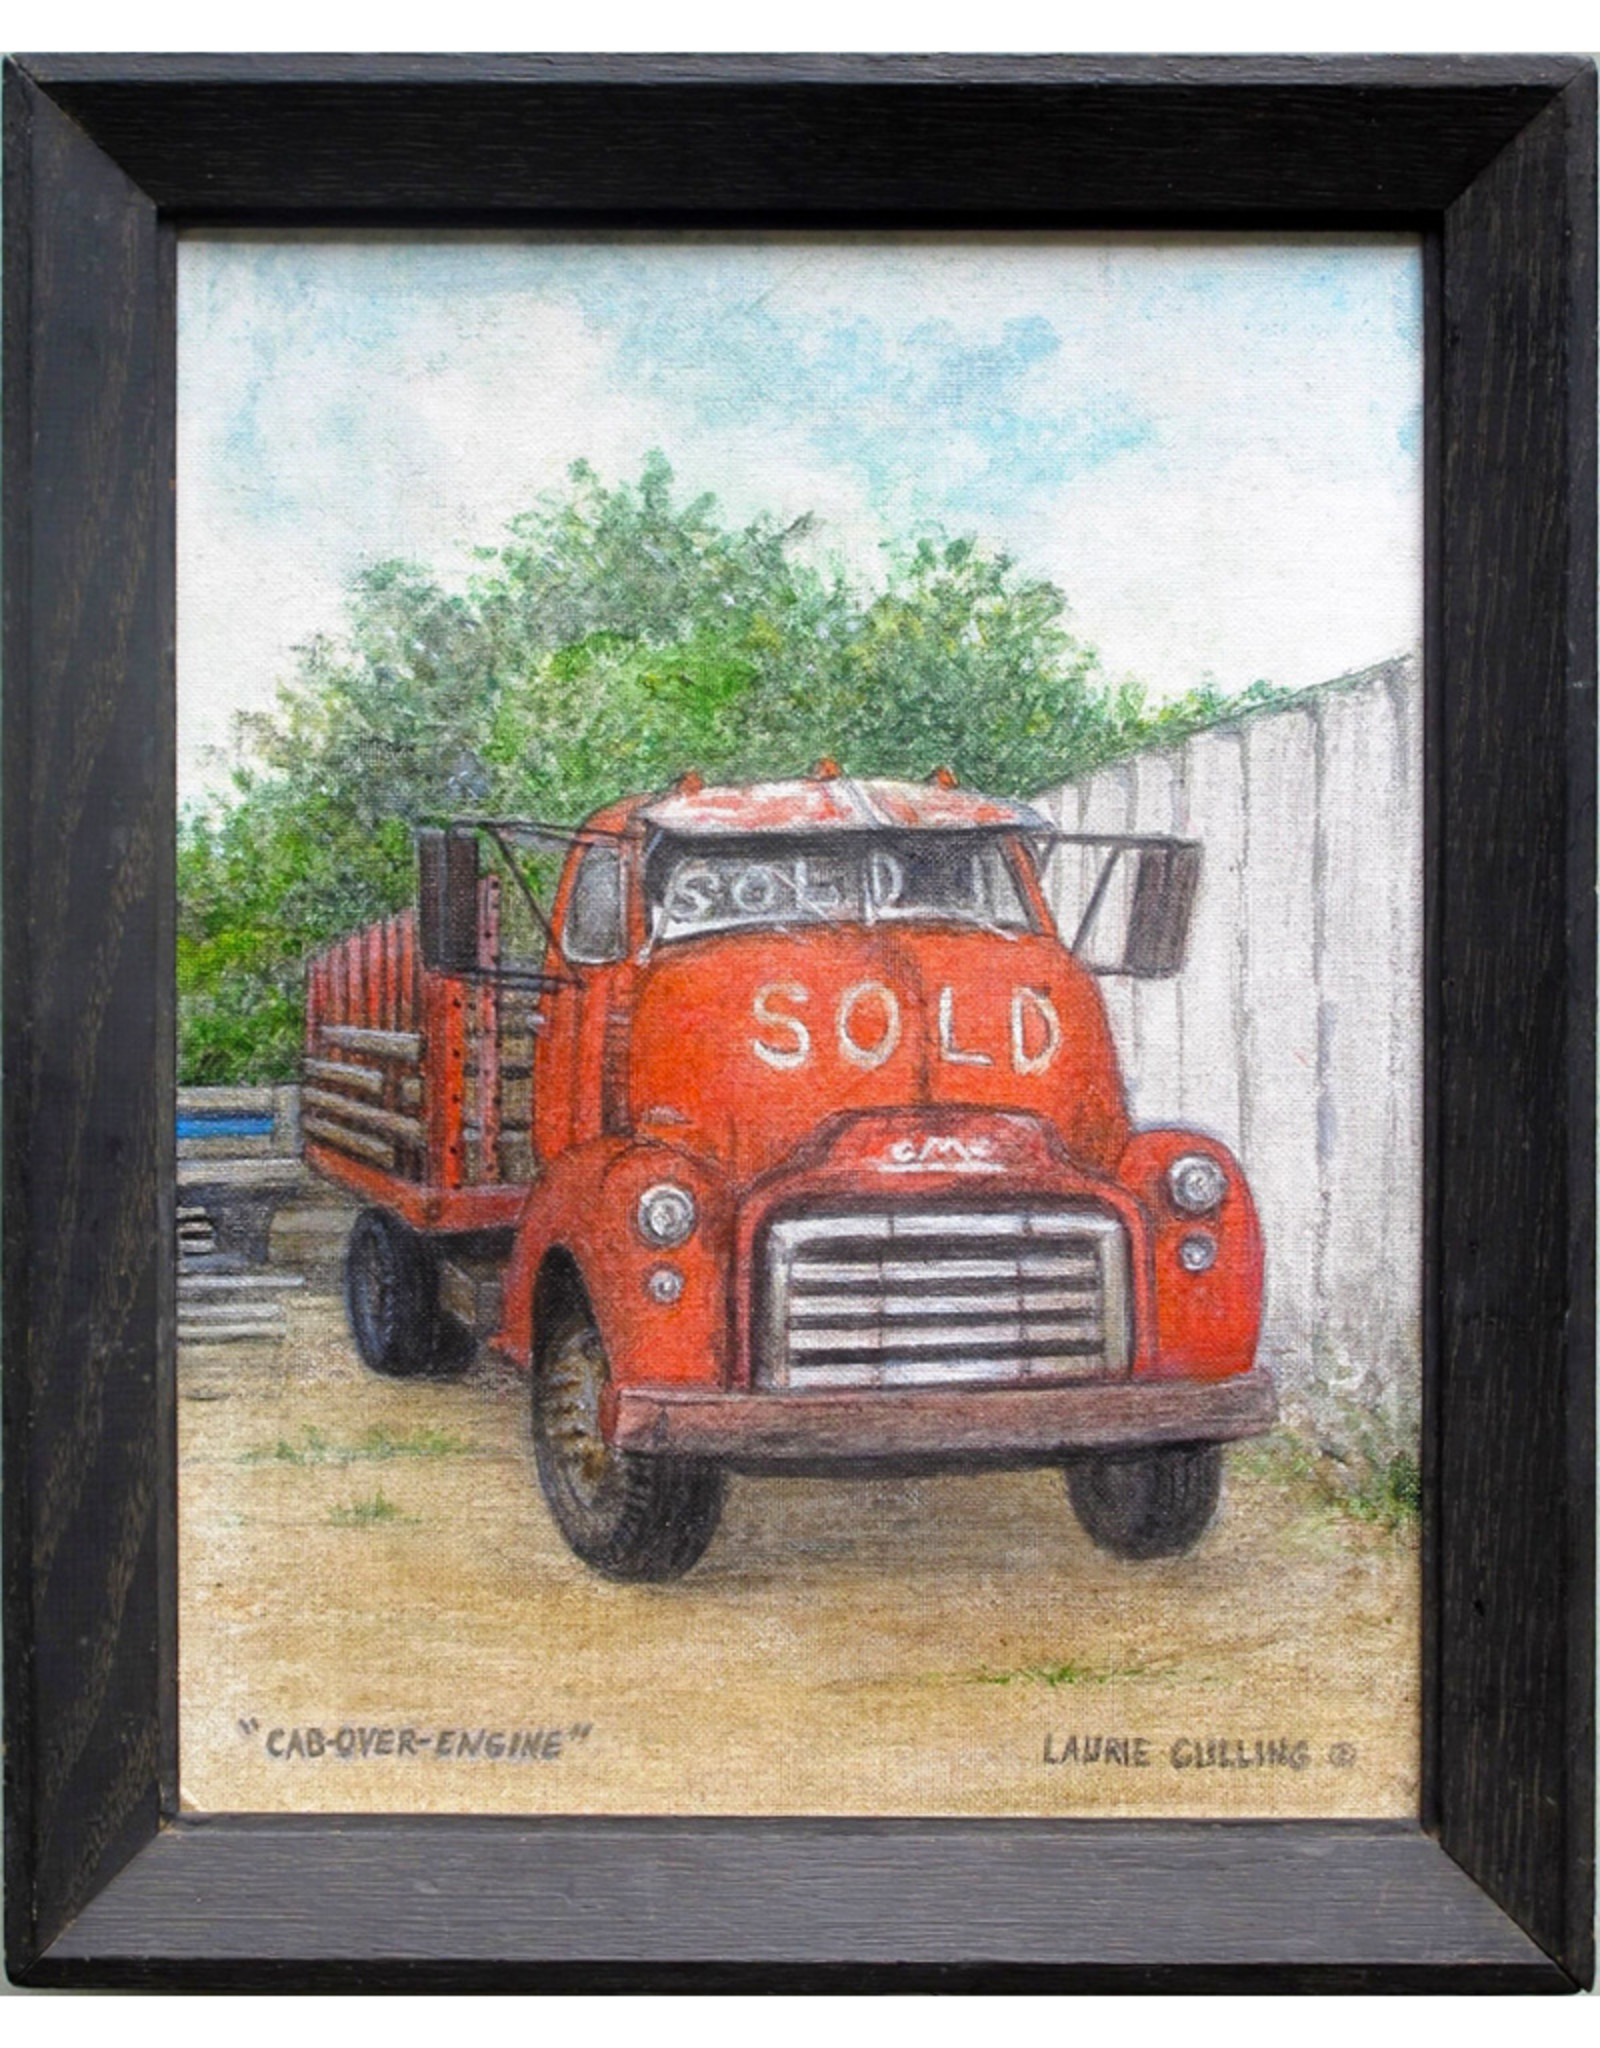 Laurie Culling Vintage Red Cab-Over-Engine GMC by Laurie Culling